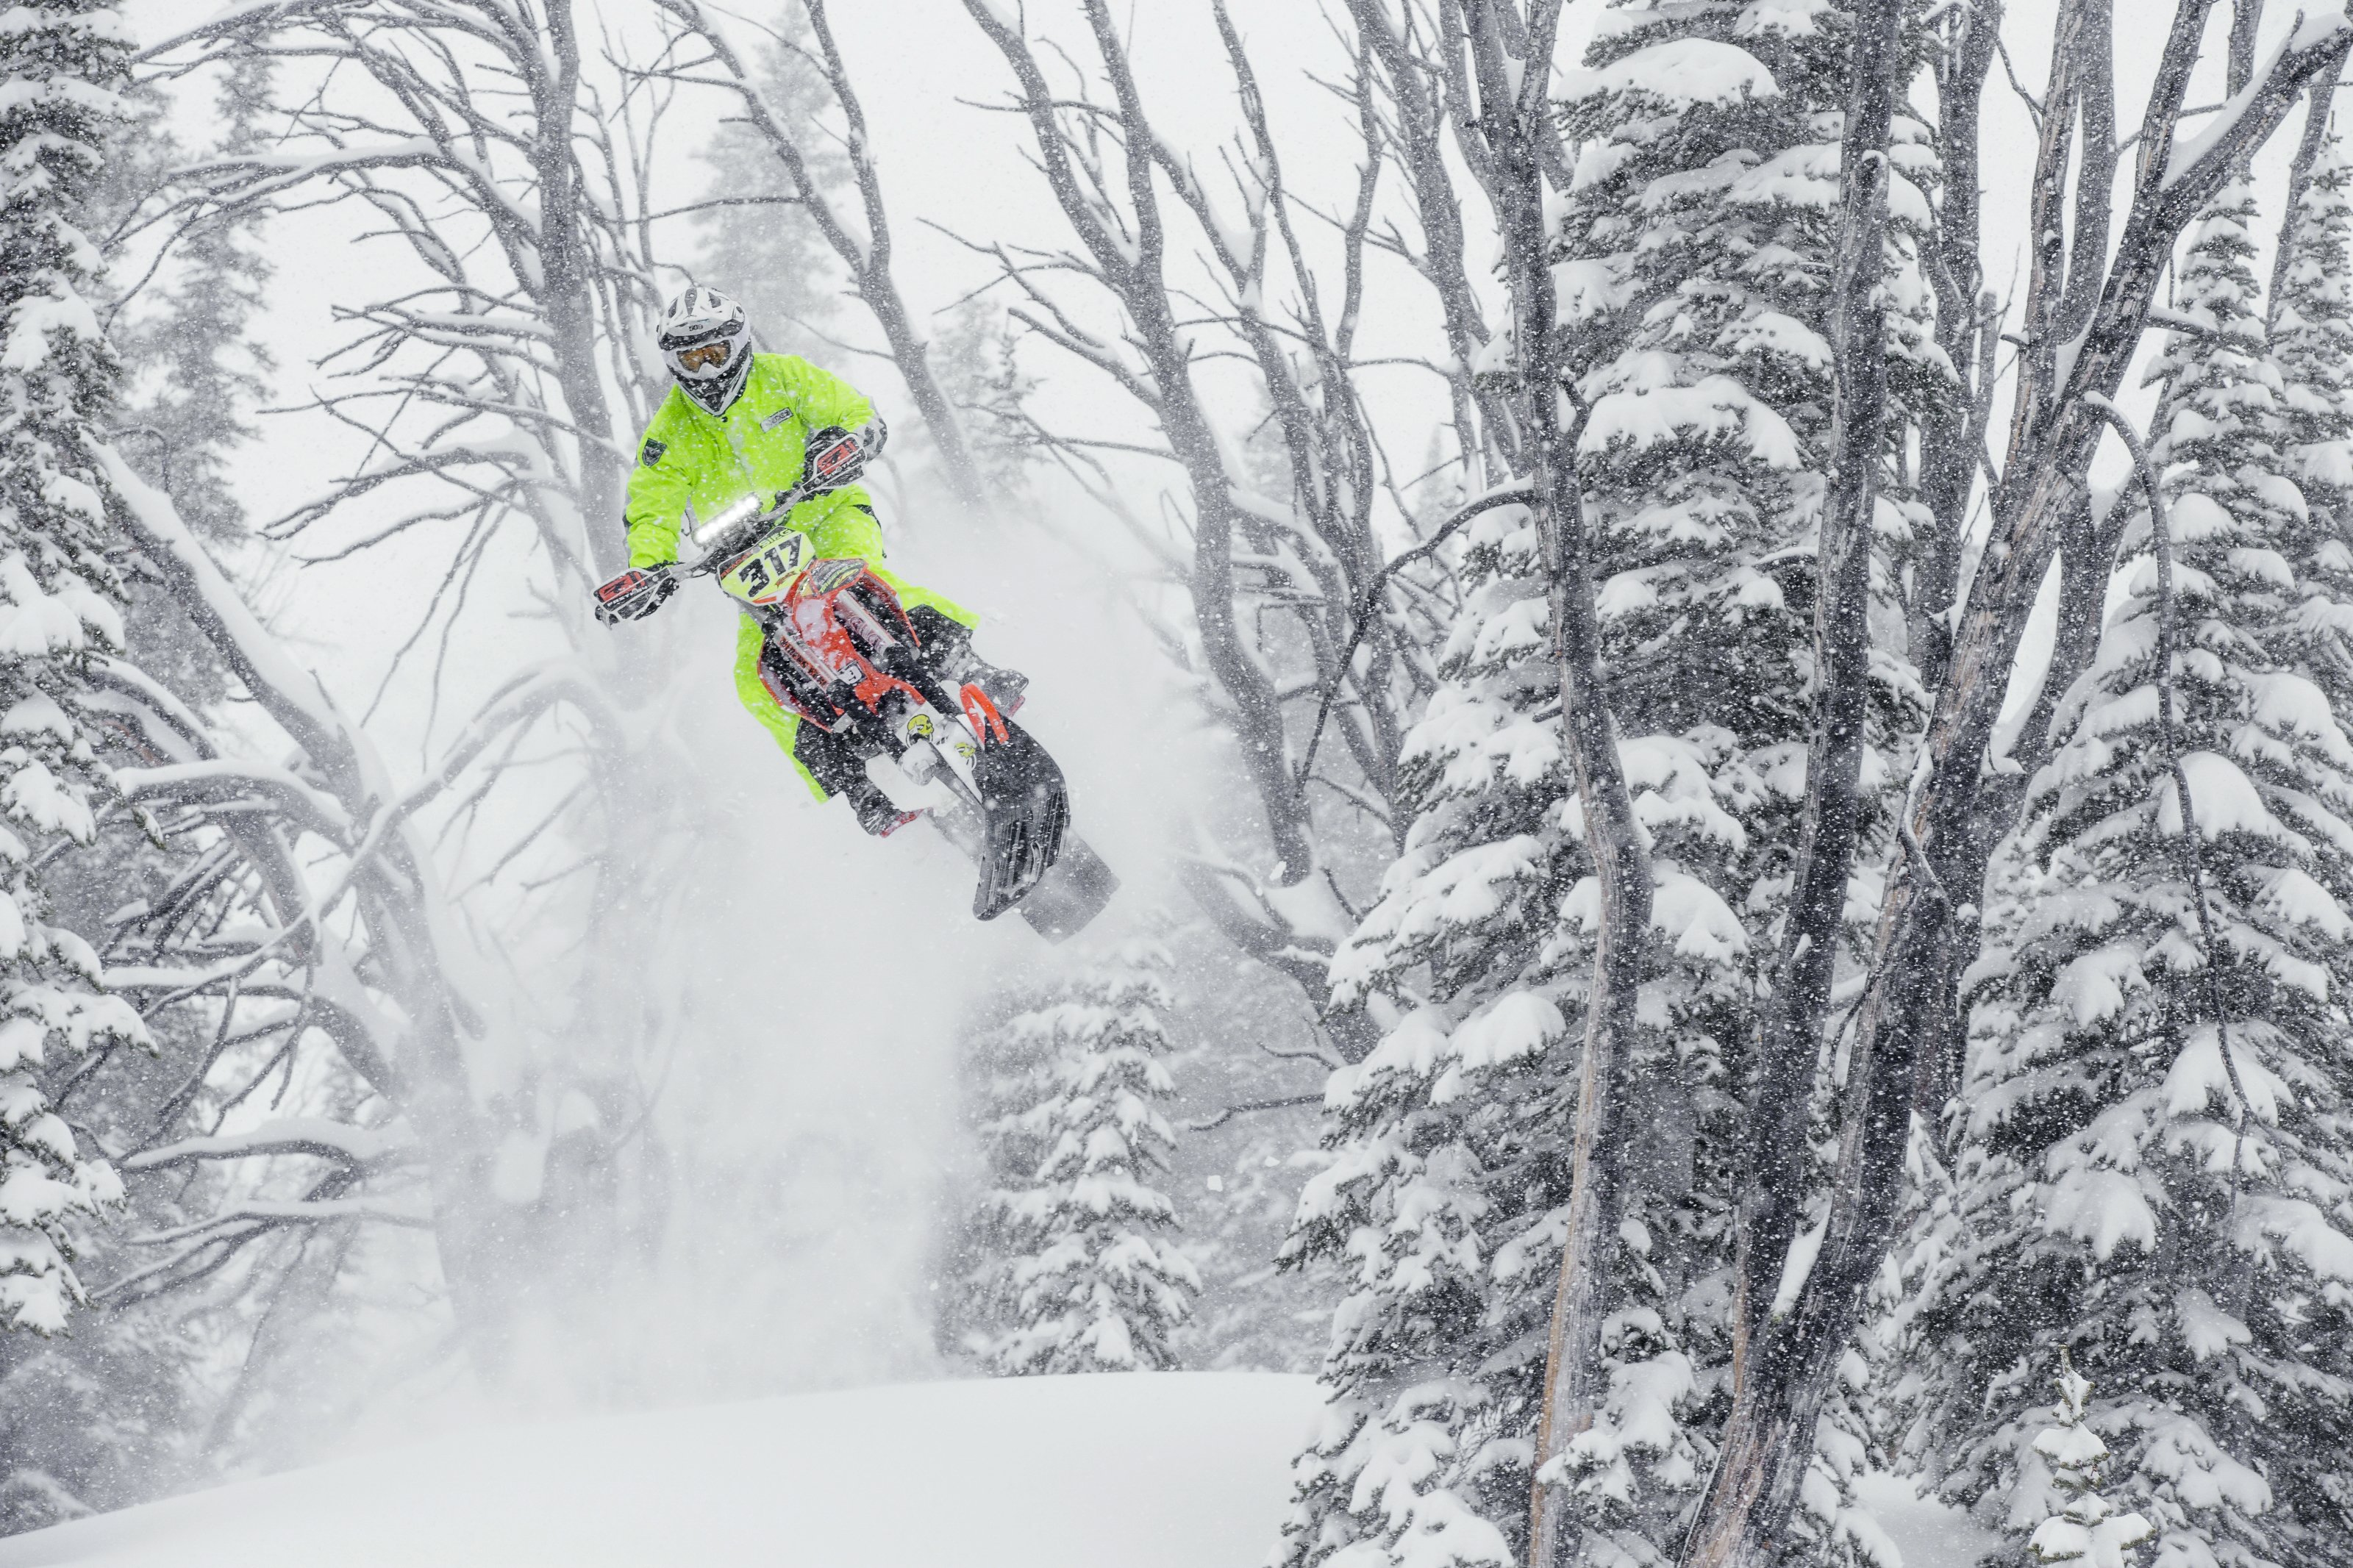 Backcountry Snowbike Sessions in Idaho with Ronnie Renner, Brock Hoyer & Reagan Seig